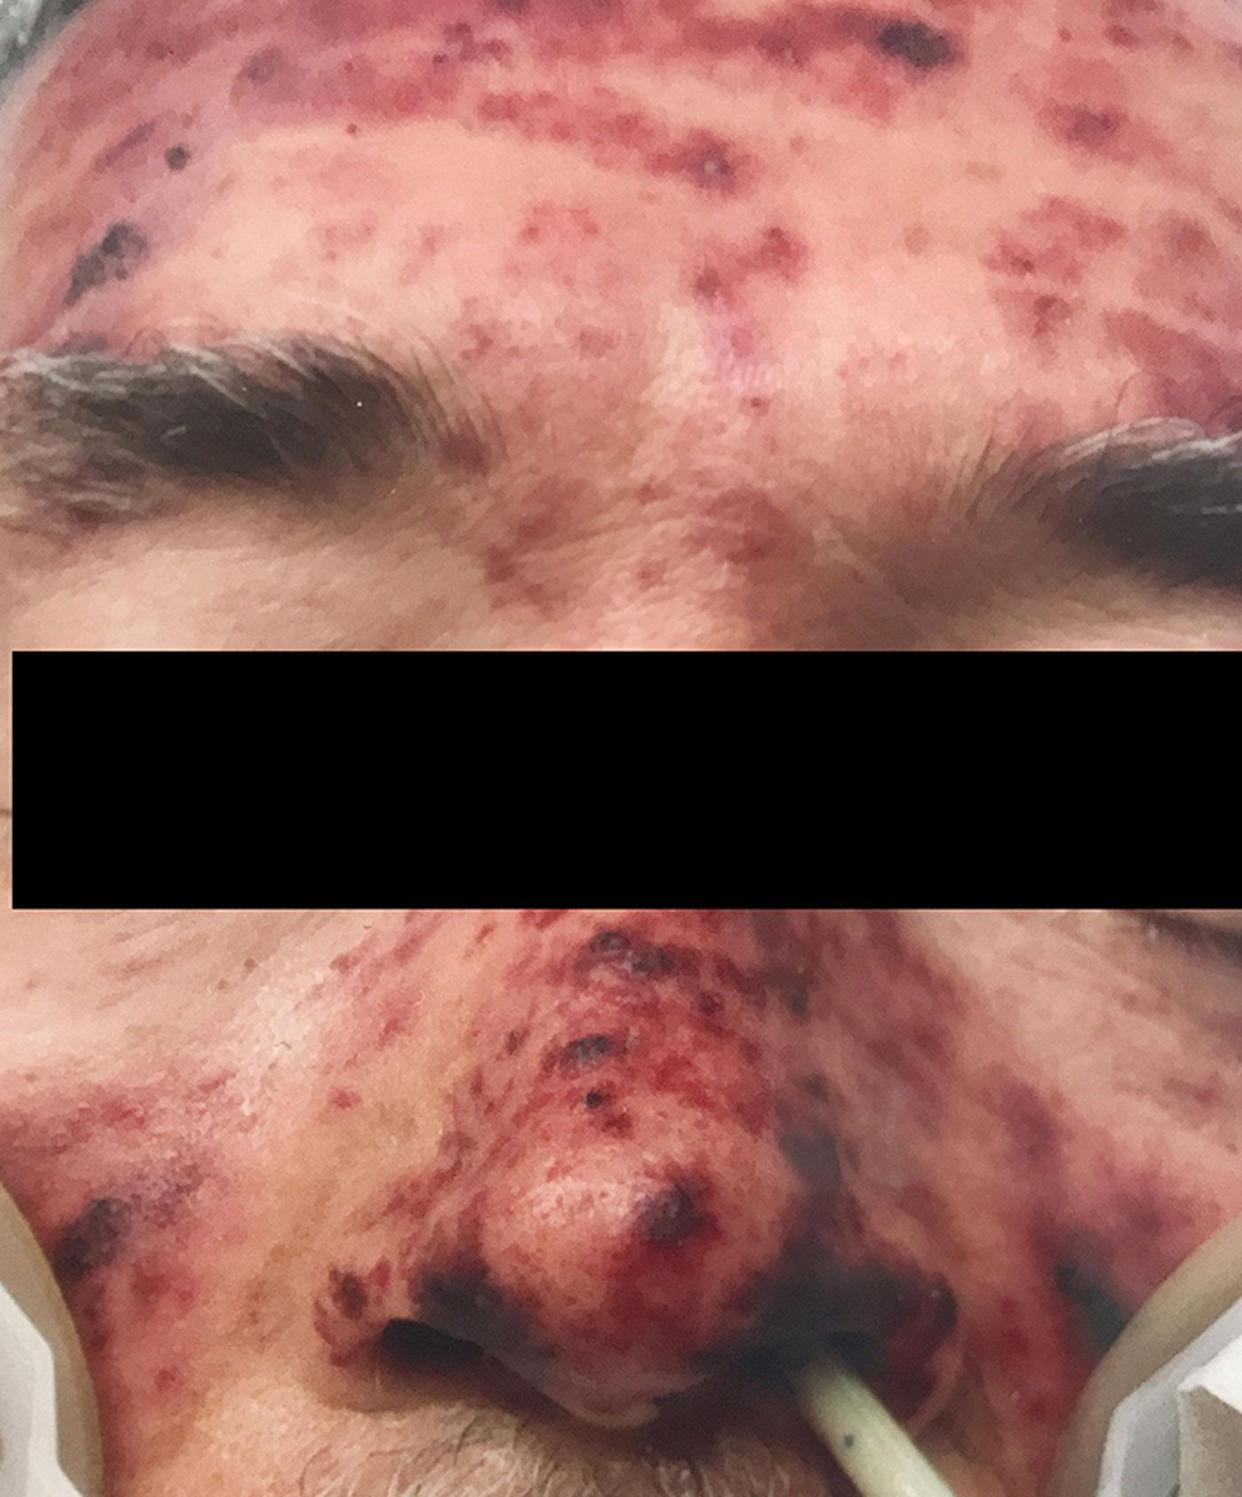 The unnamed 63-year-old had severe bruising over his face. He went on to develop sepsis and multiple organ failure. [European Journal Of Case Reports In Internal Medicine]